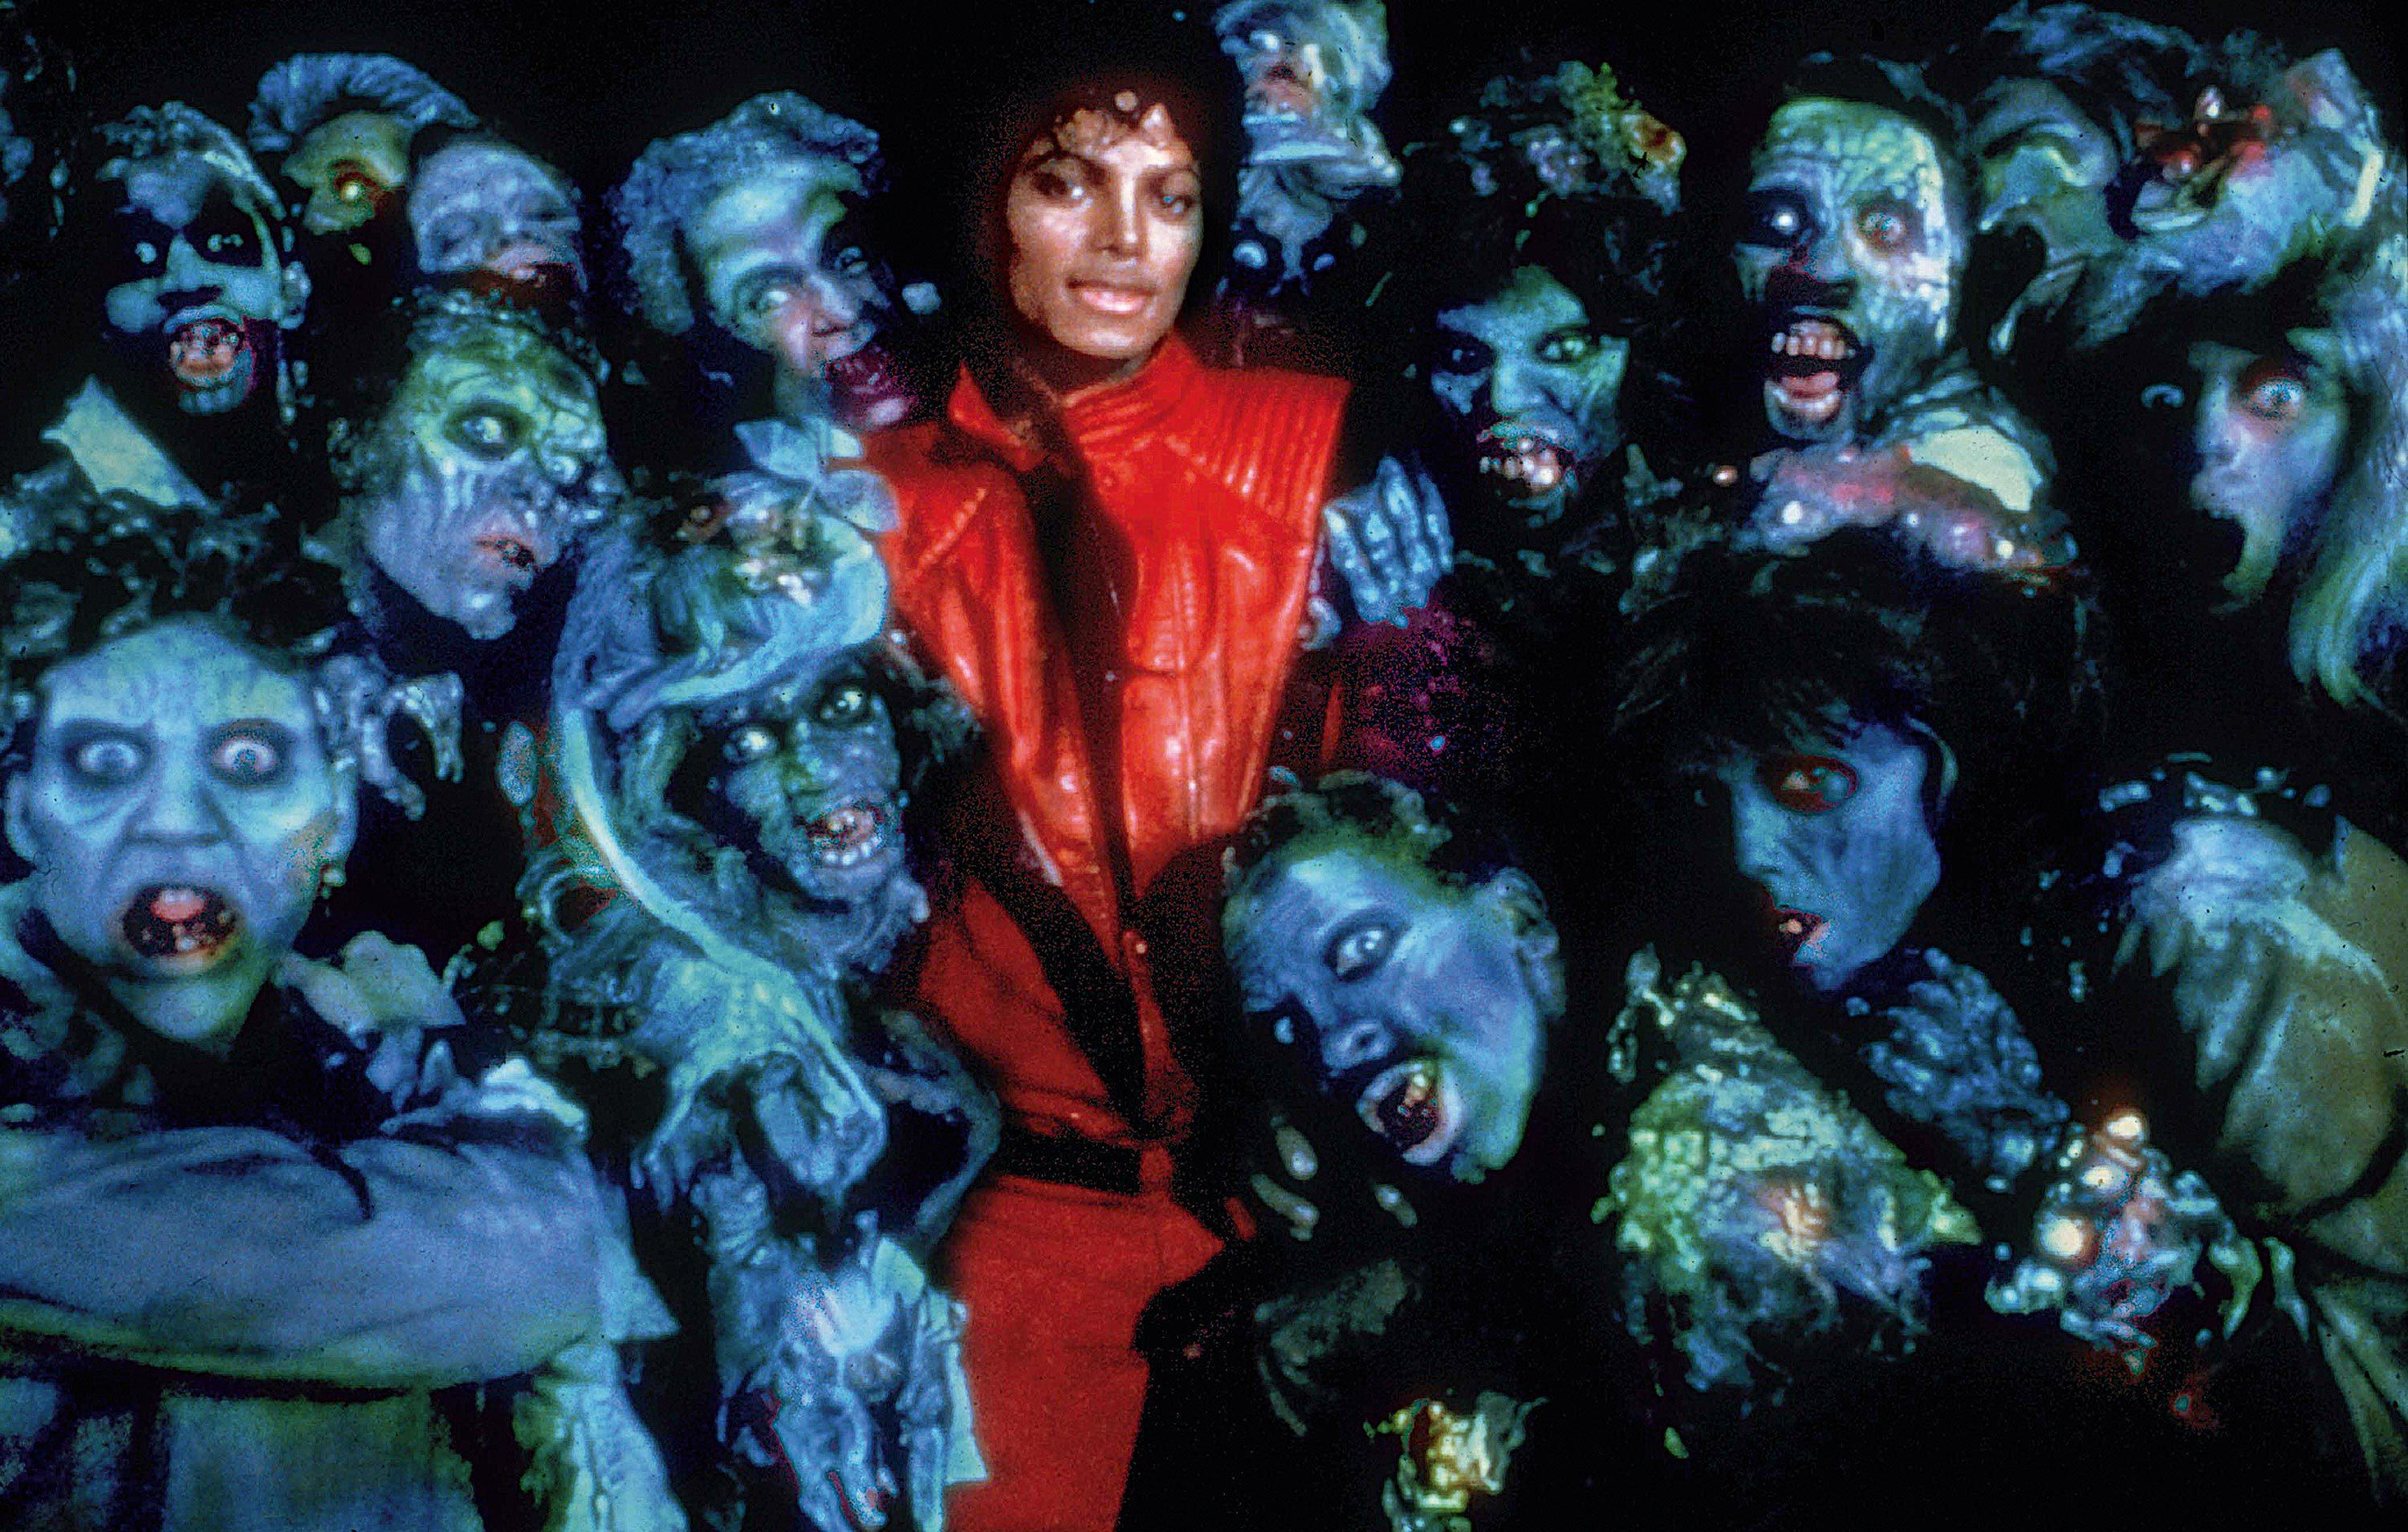 Thriller directed by John Landis